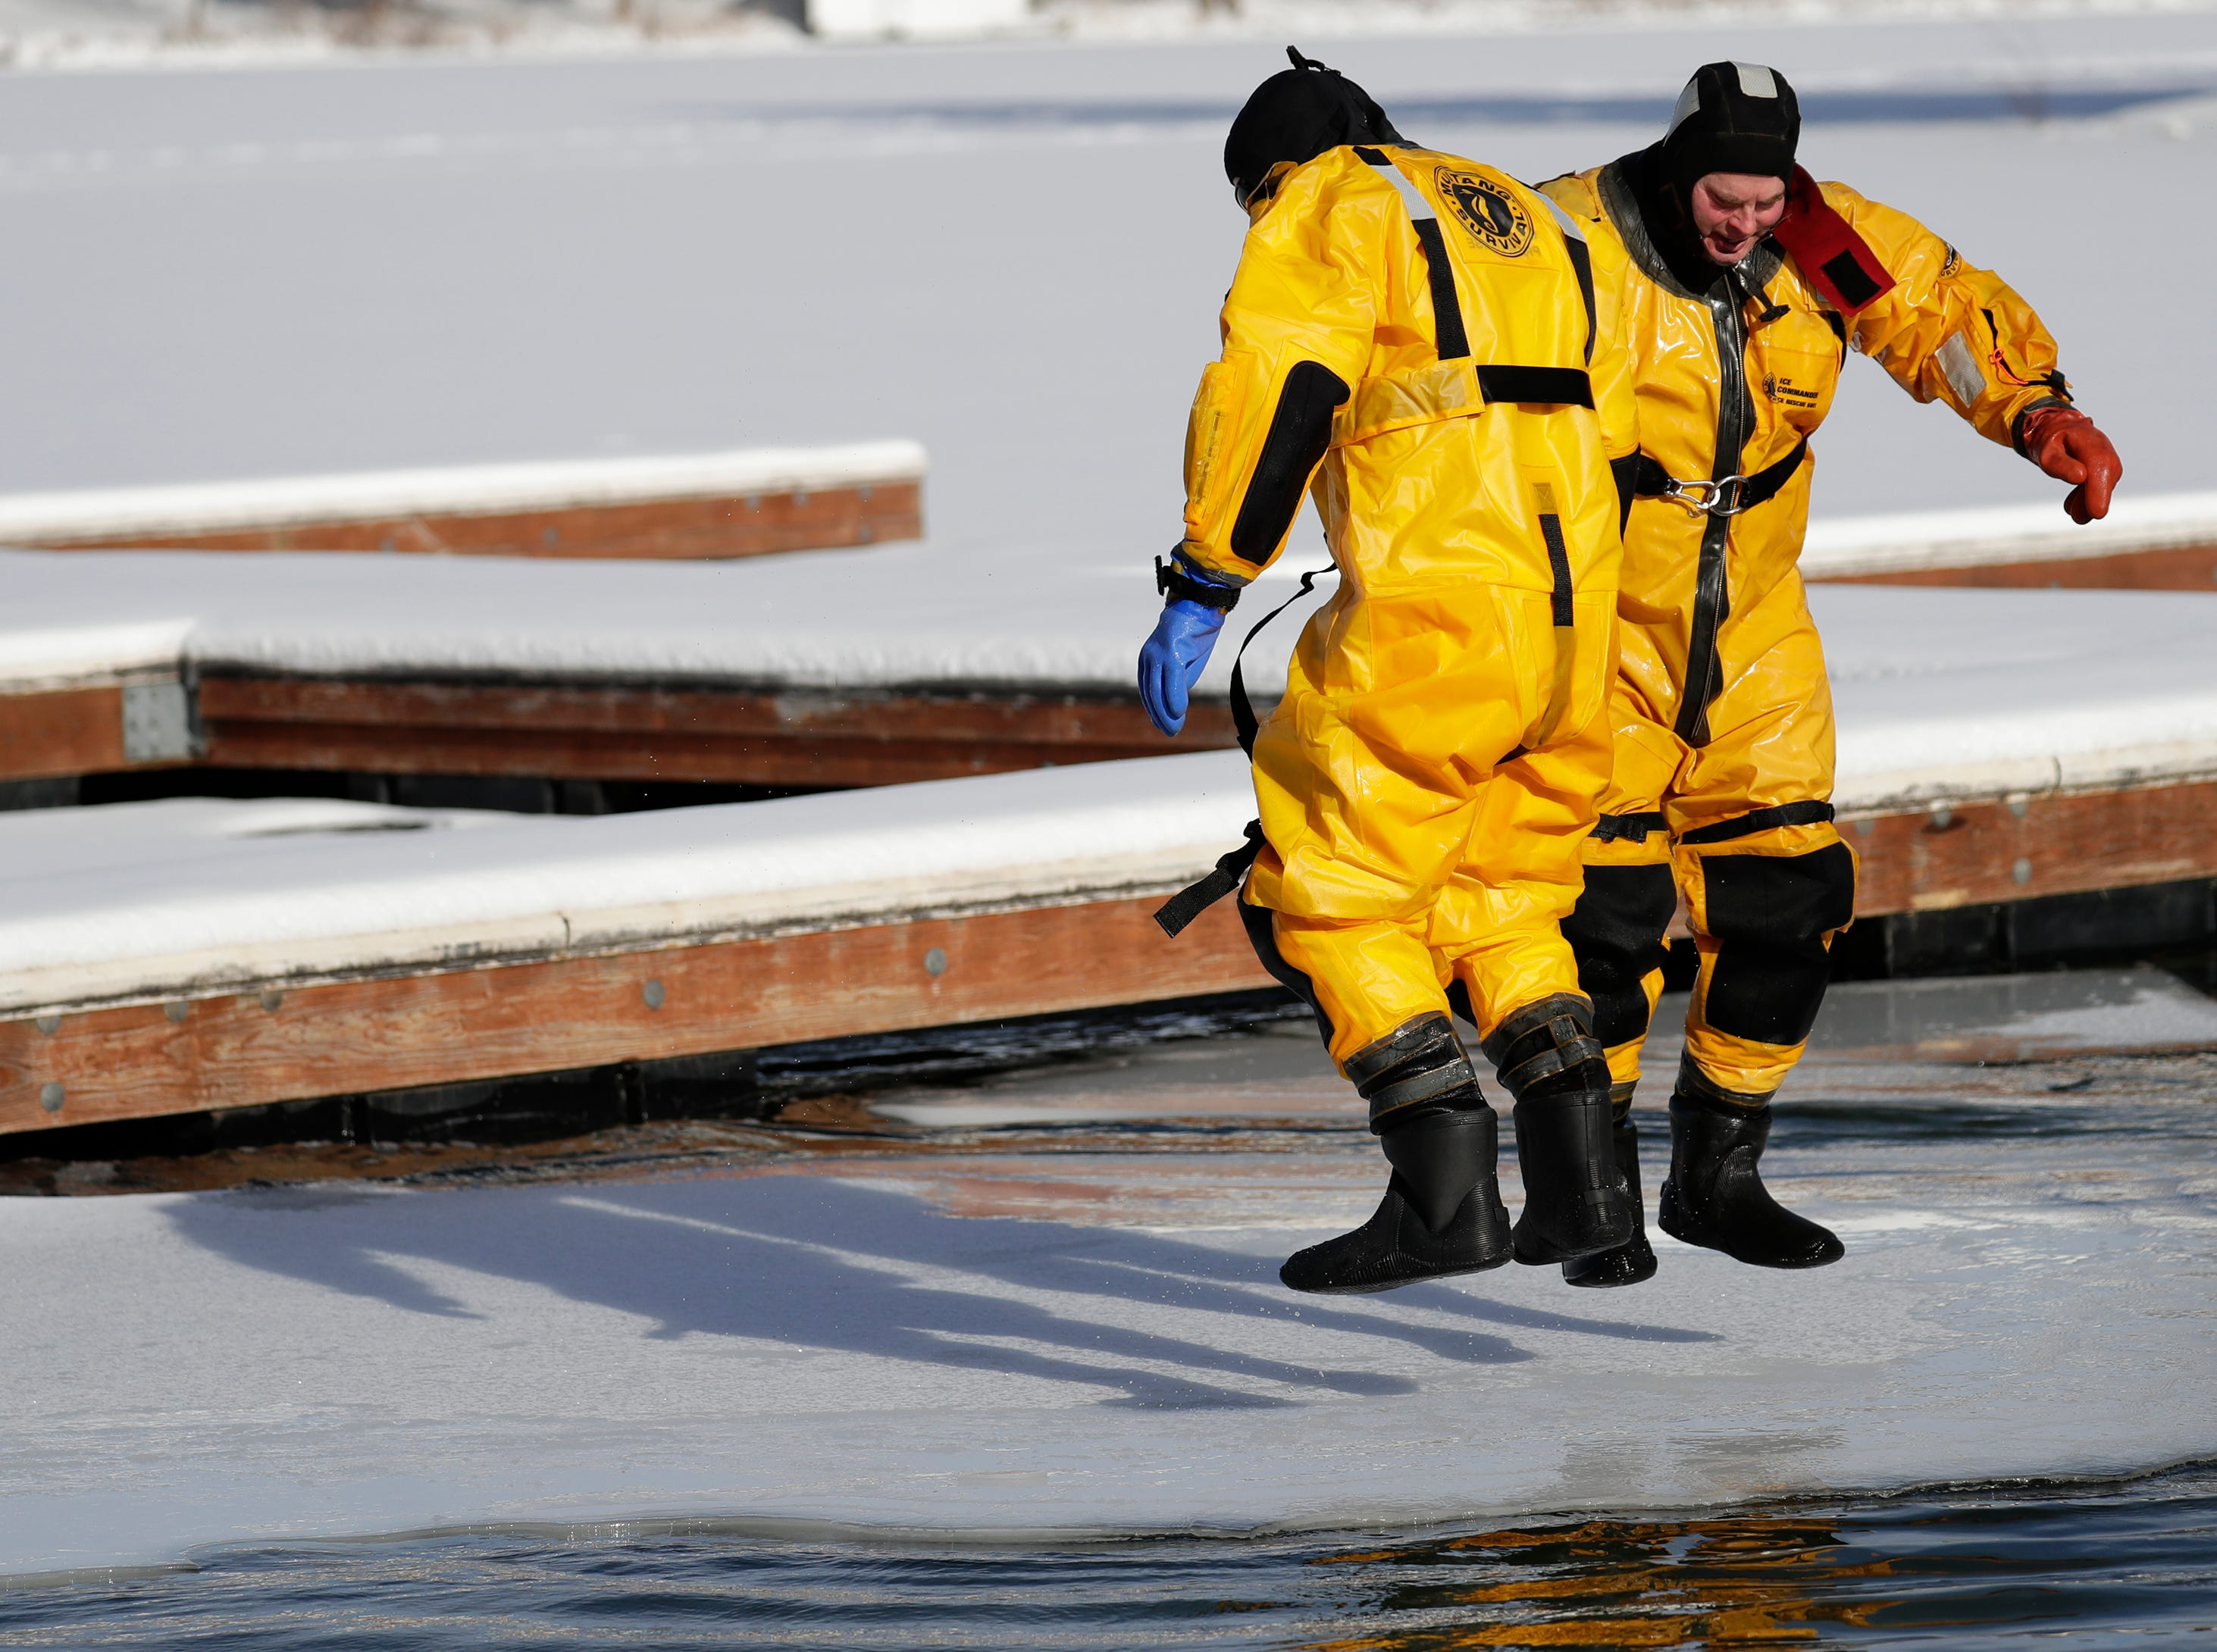 Waupaca firefighter Scott Obremski, left, and Lt. Pete Jungers jump up and down trying to break off the edge of the ice during the Polar Bear Plunge Tuesday, January 1, 2019, at Becker Marine on Lime Kiln Lake in Waupaca, Wis. 